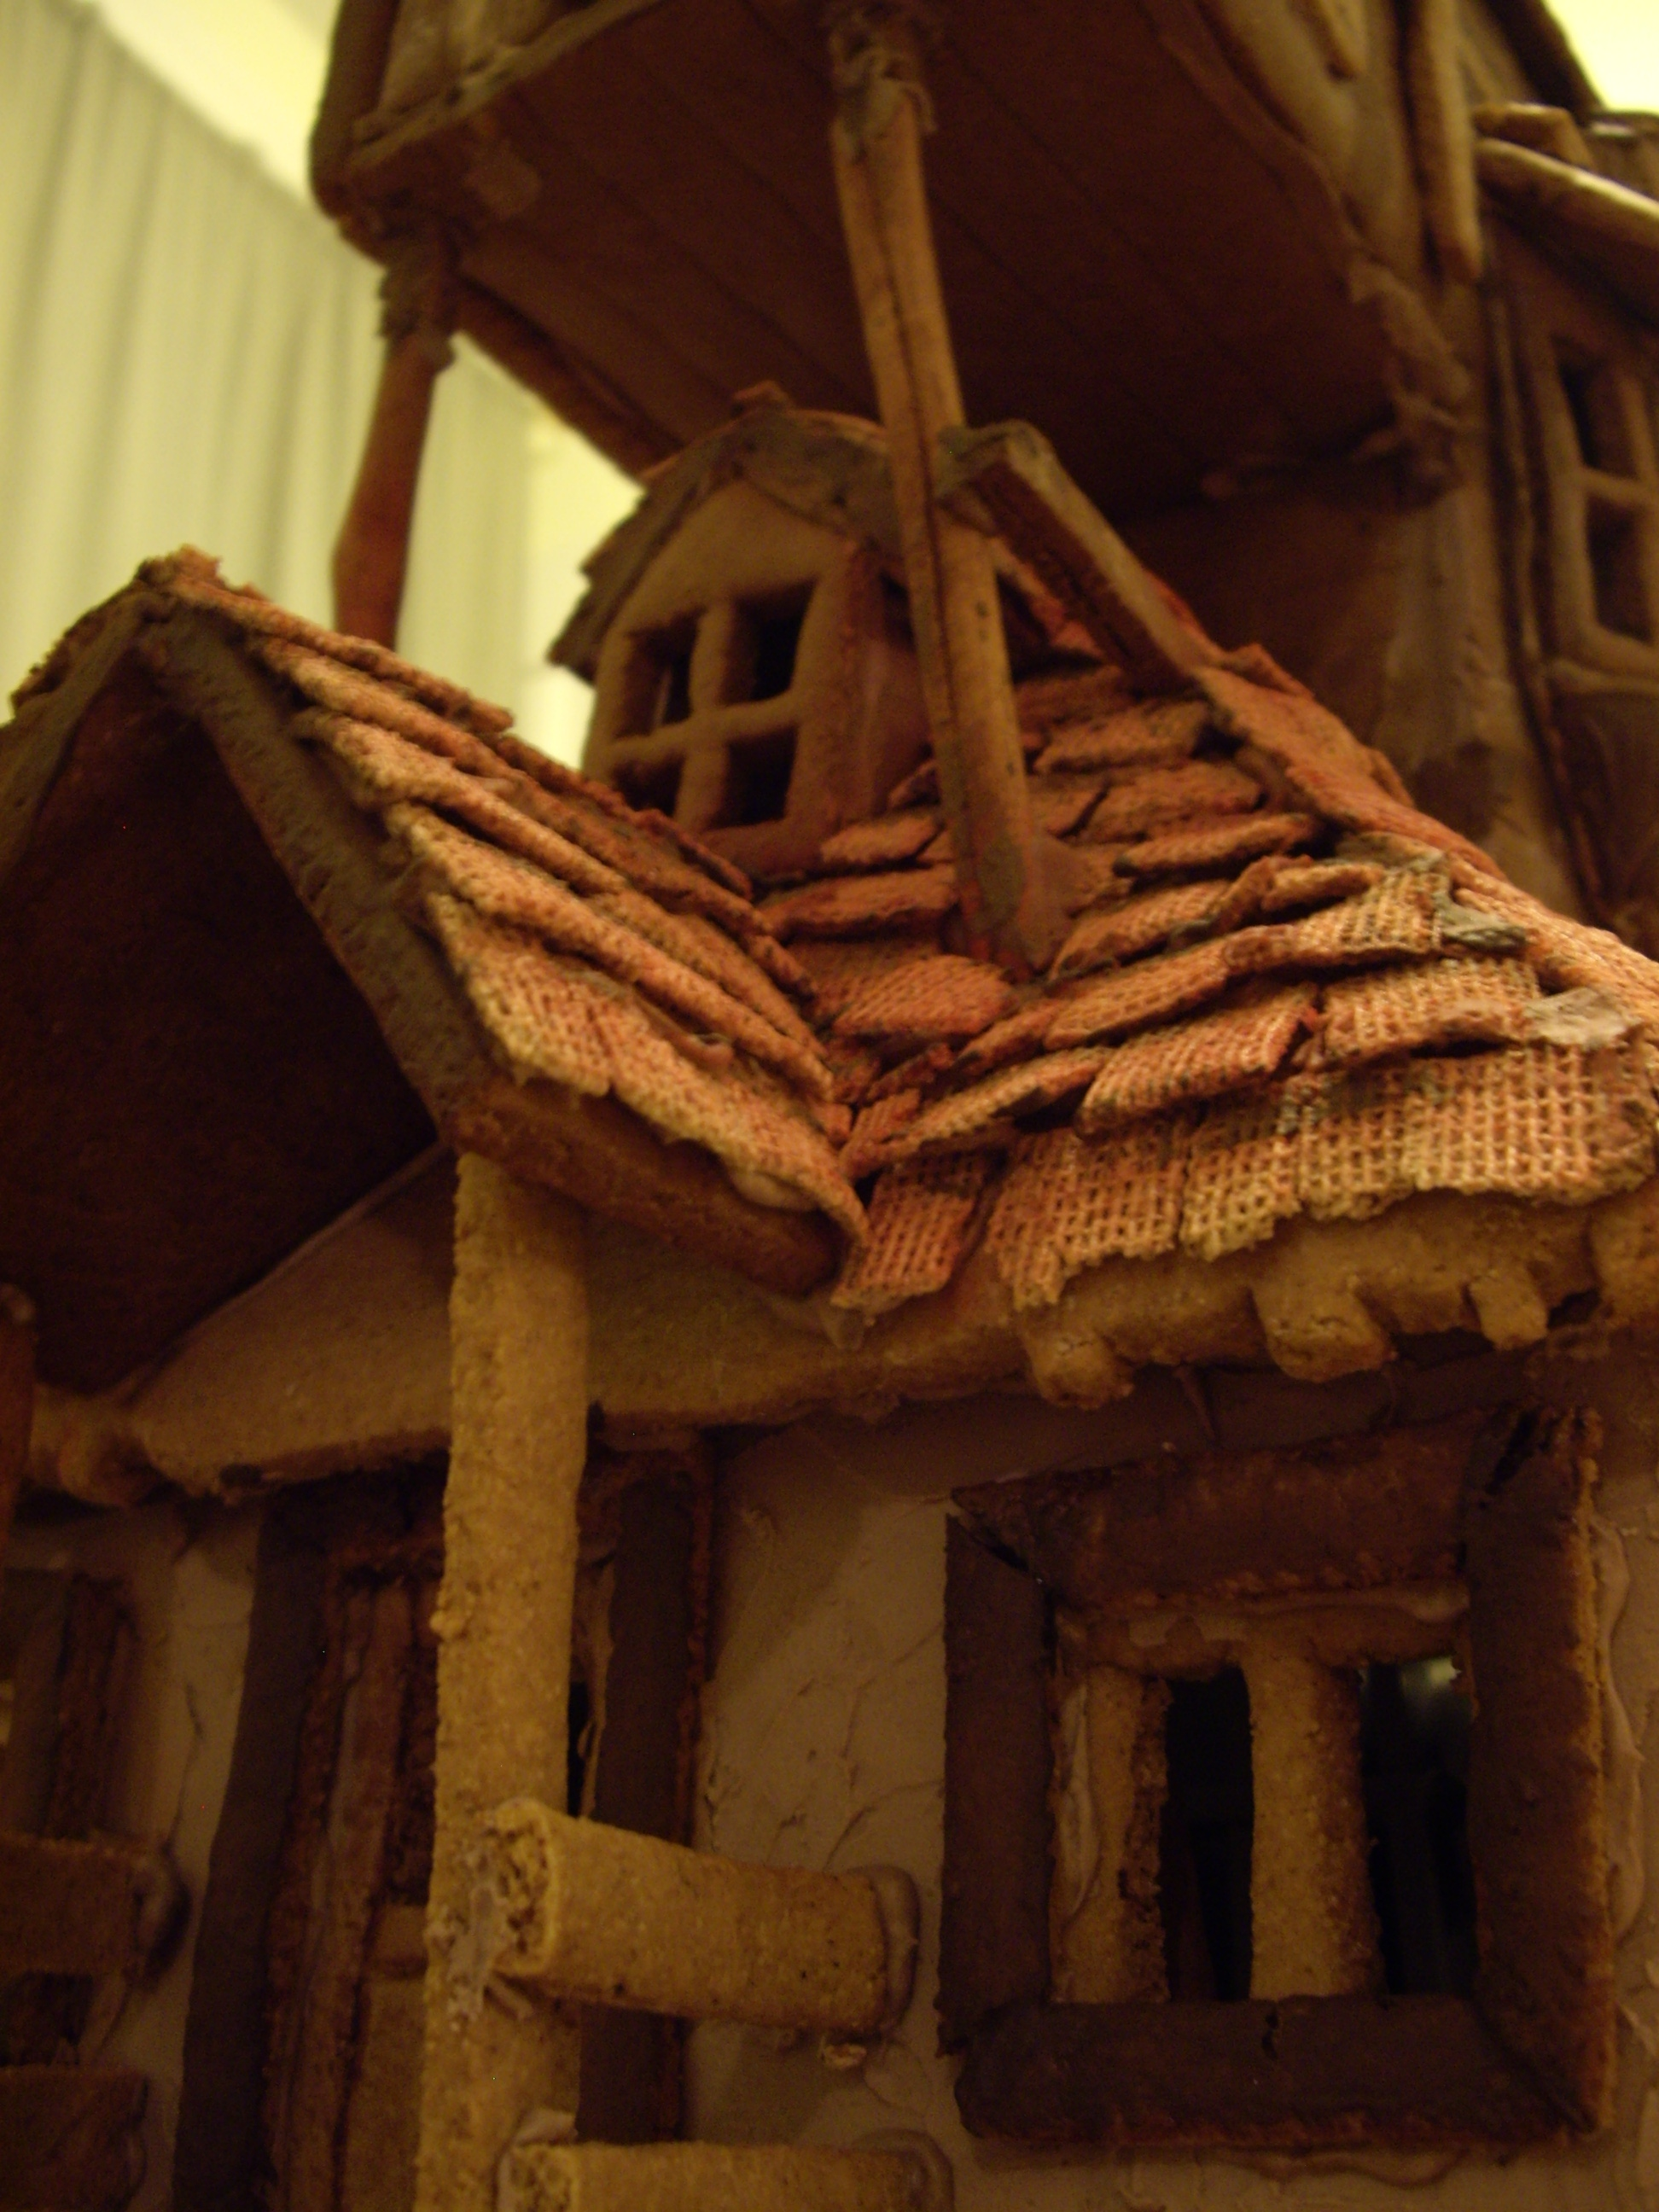 Picture of Harry Potter - the Weasley's Burrow Gingerbread House